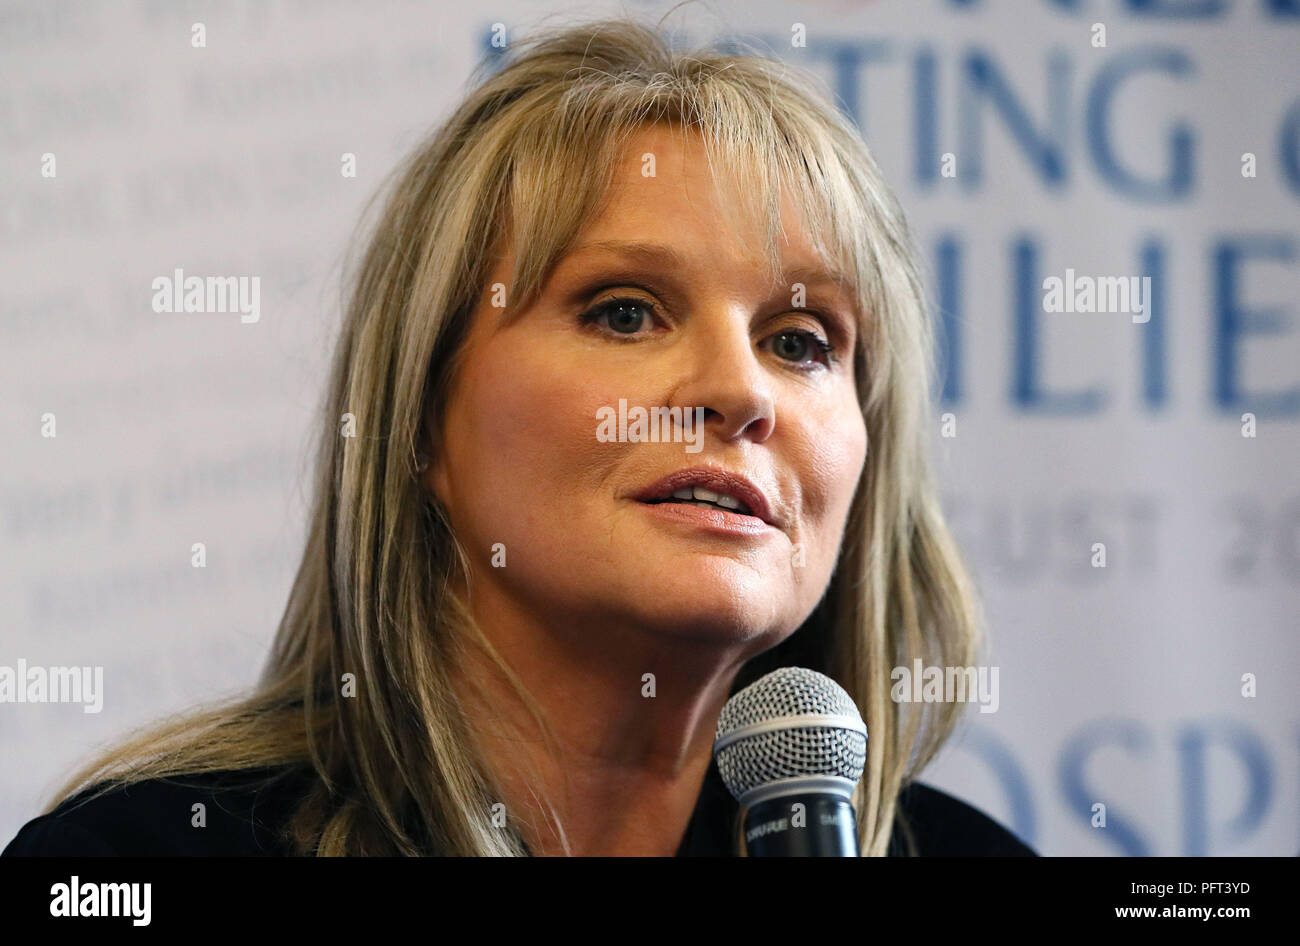 Dr Mary Aiken, Adjunct Associate Professor at University College Dublin, Geary Institute for Public Policy, and an Academic Advisor to the European Cyber Crime Centre at Europol, during a press conference at Dublin's RDS during the World Meeting of Families. - Stock Image